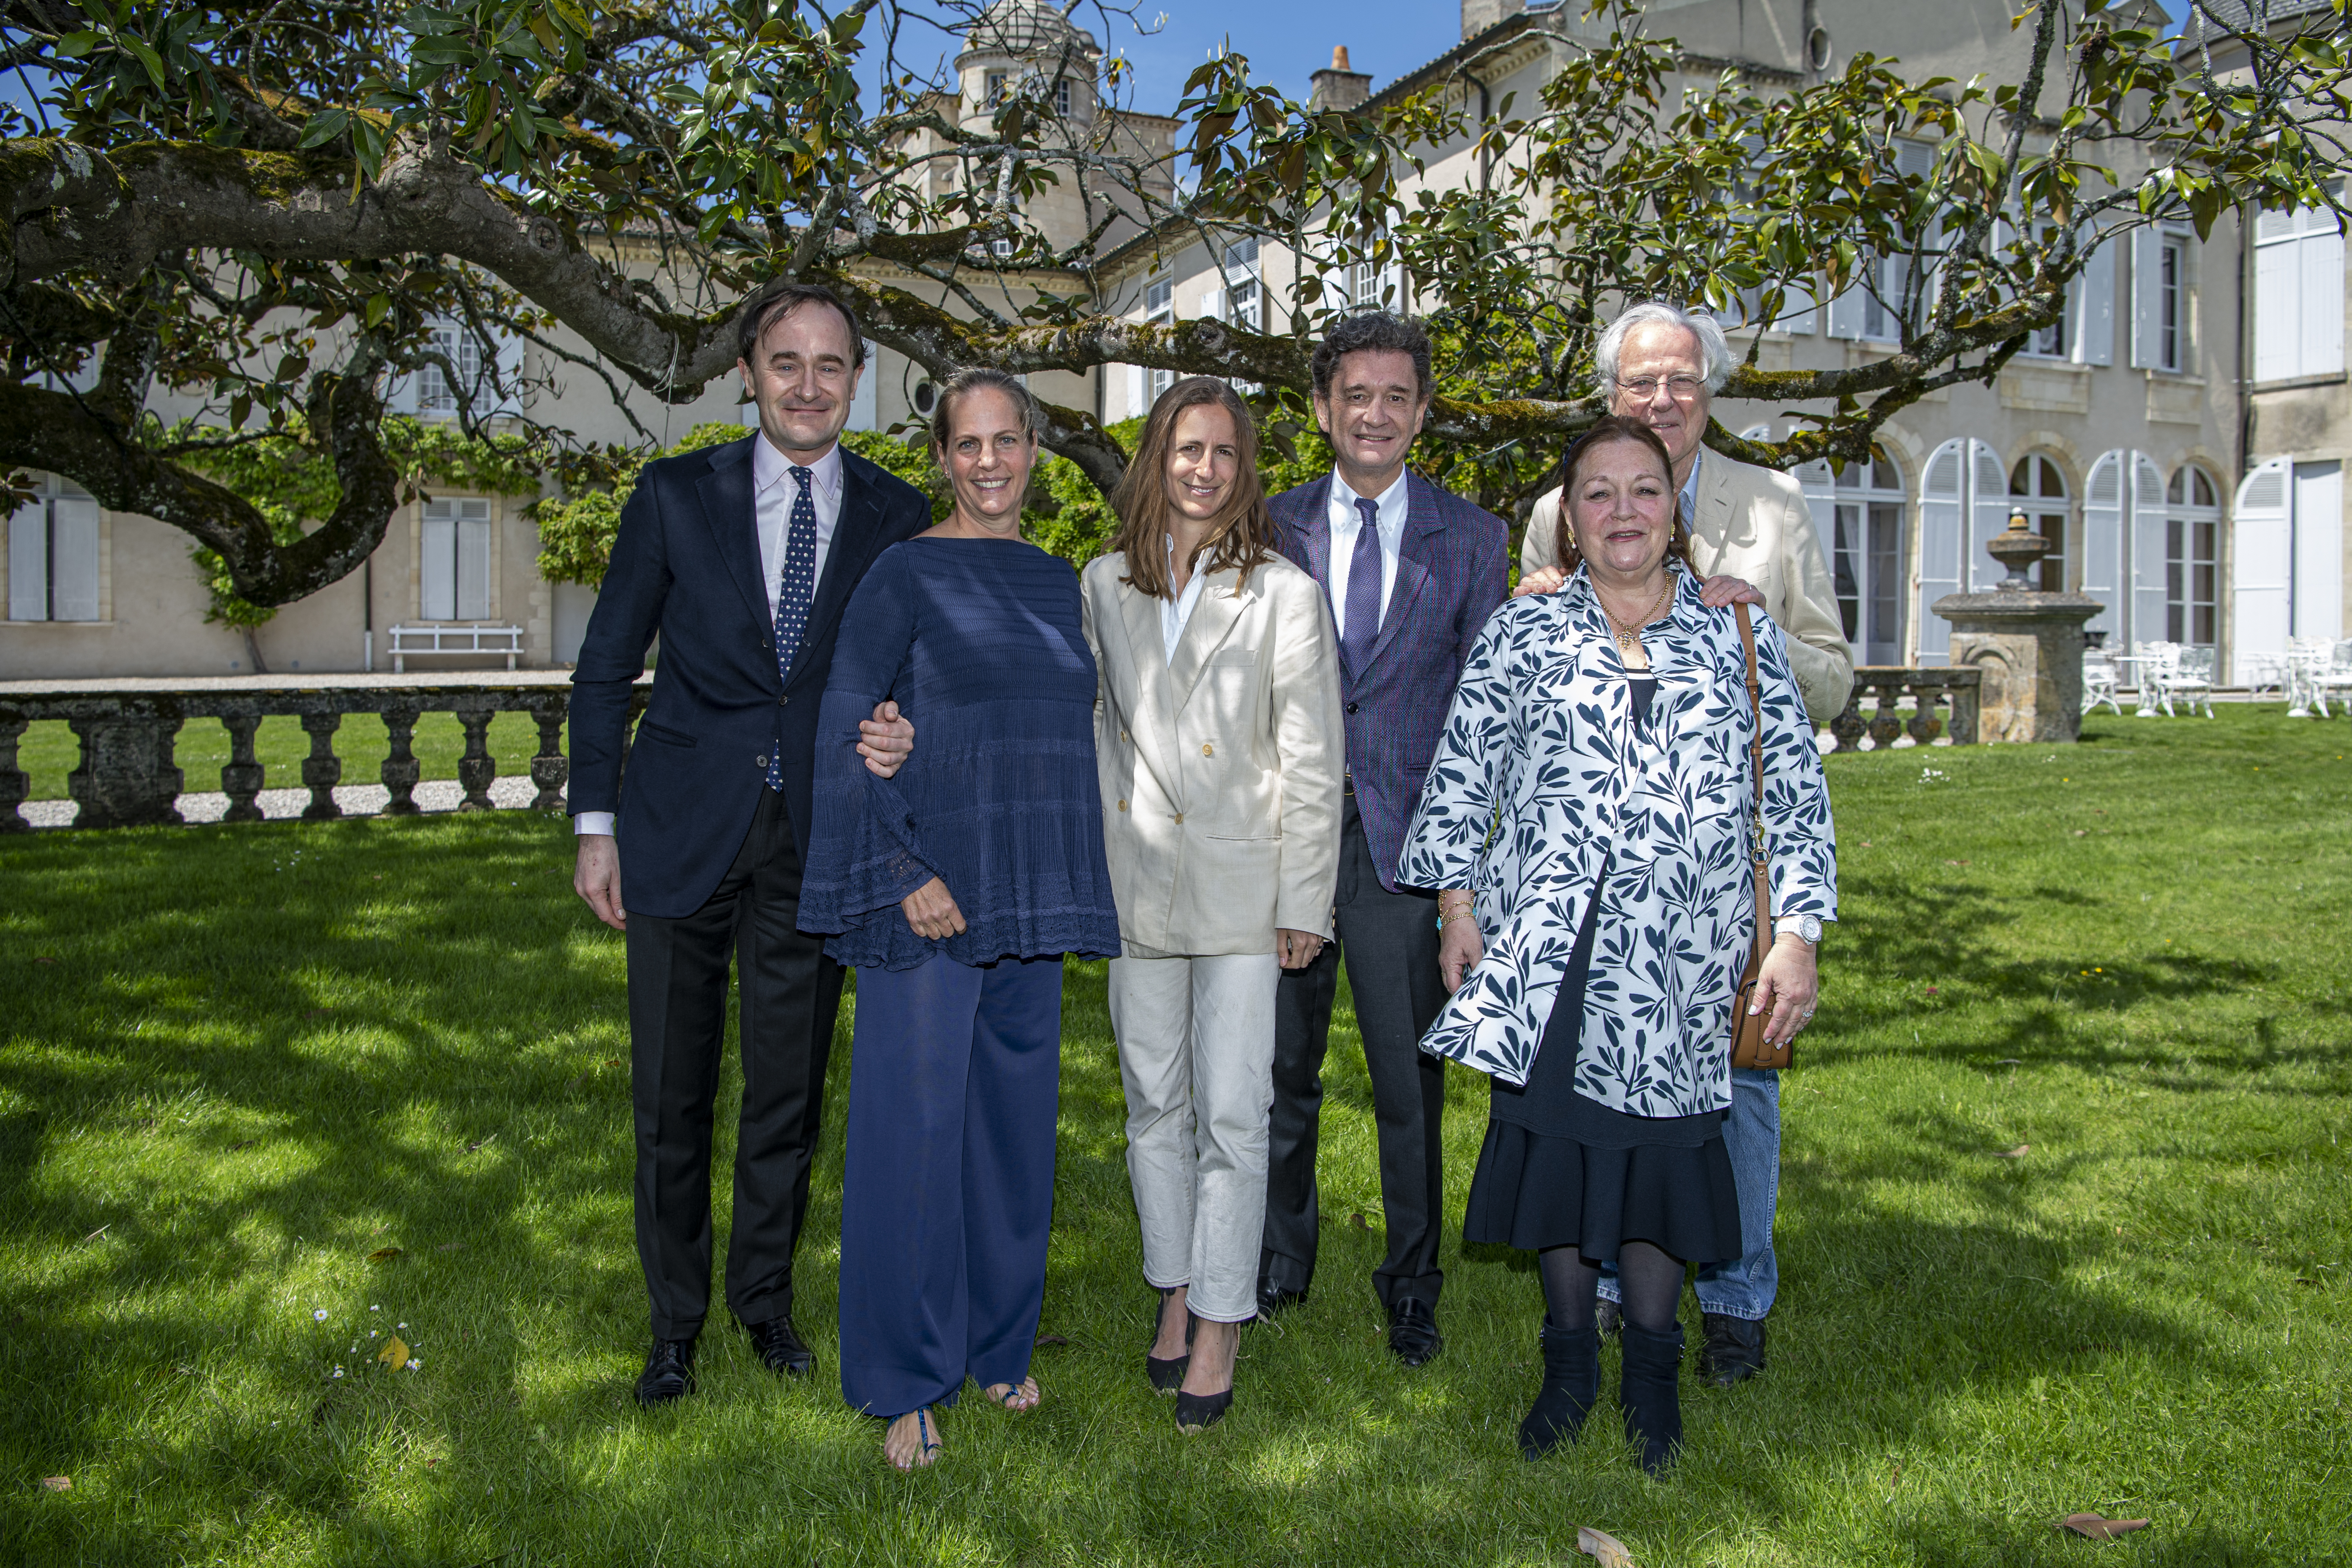 ROTHSCHILD FAMILY PICTURES 1